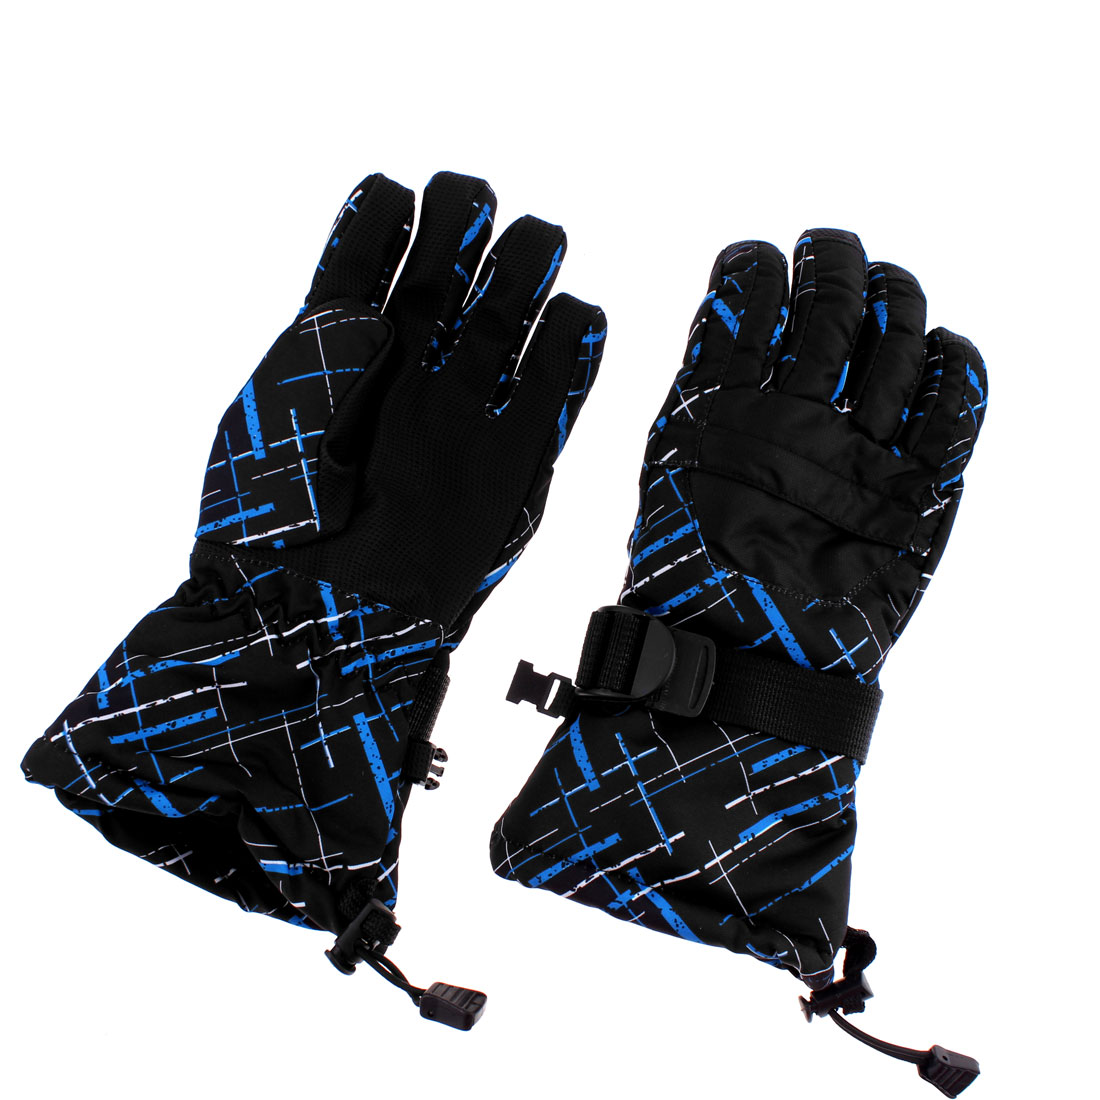 Men Winter Outdoor Ski Snowboard Gloves Black Blue Graffiti XL Pair